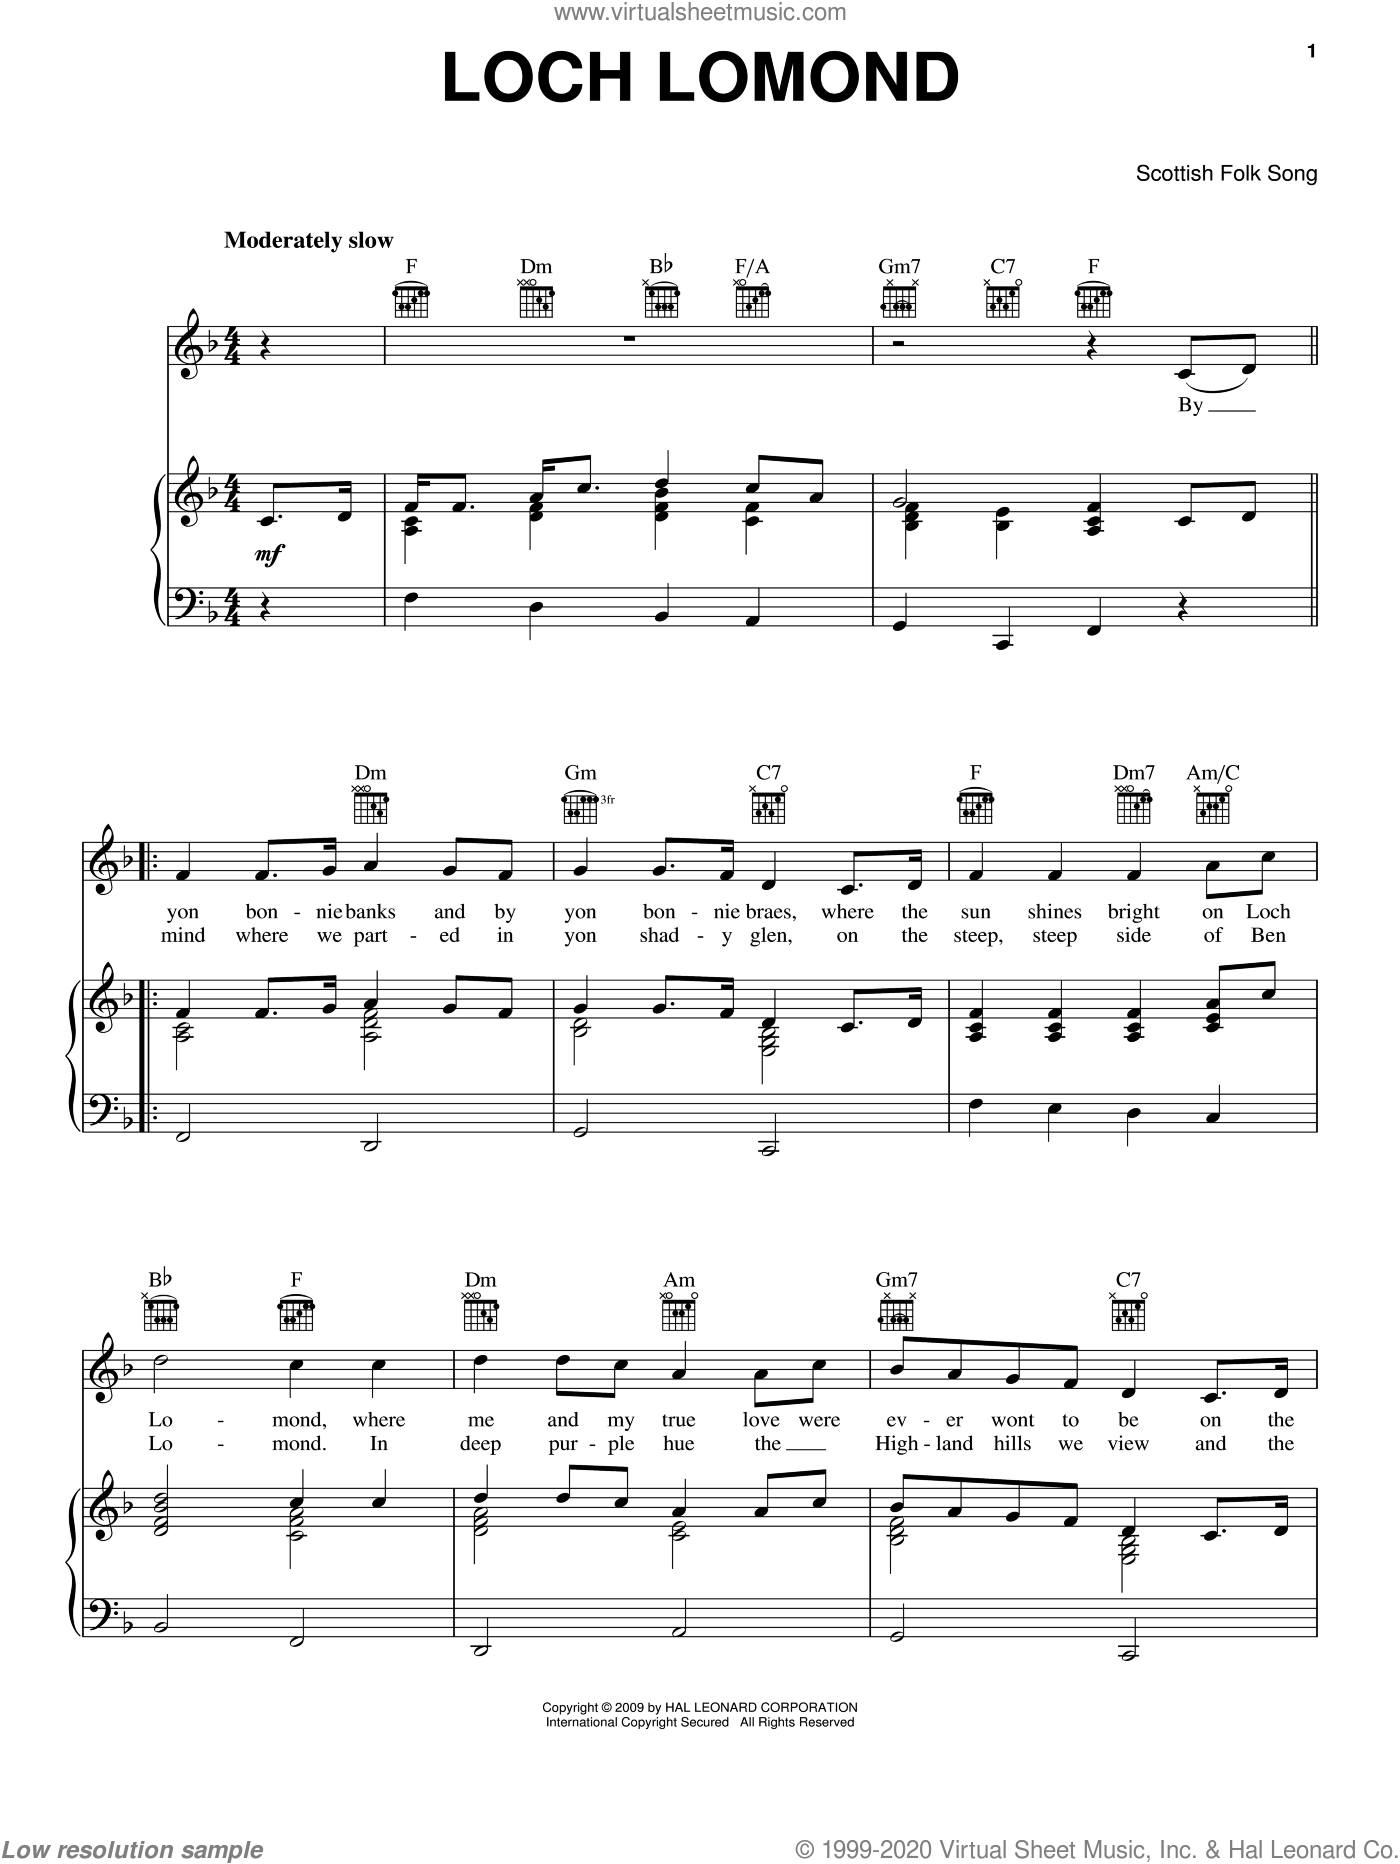 Loch Lomond sheet music for voice, piano or guitar